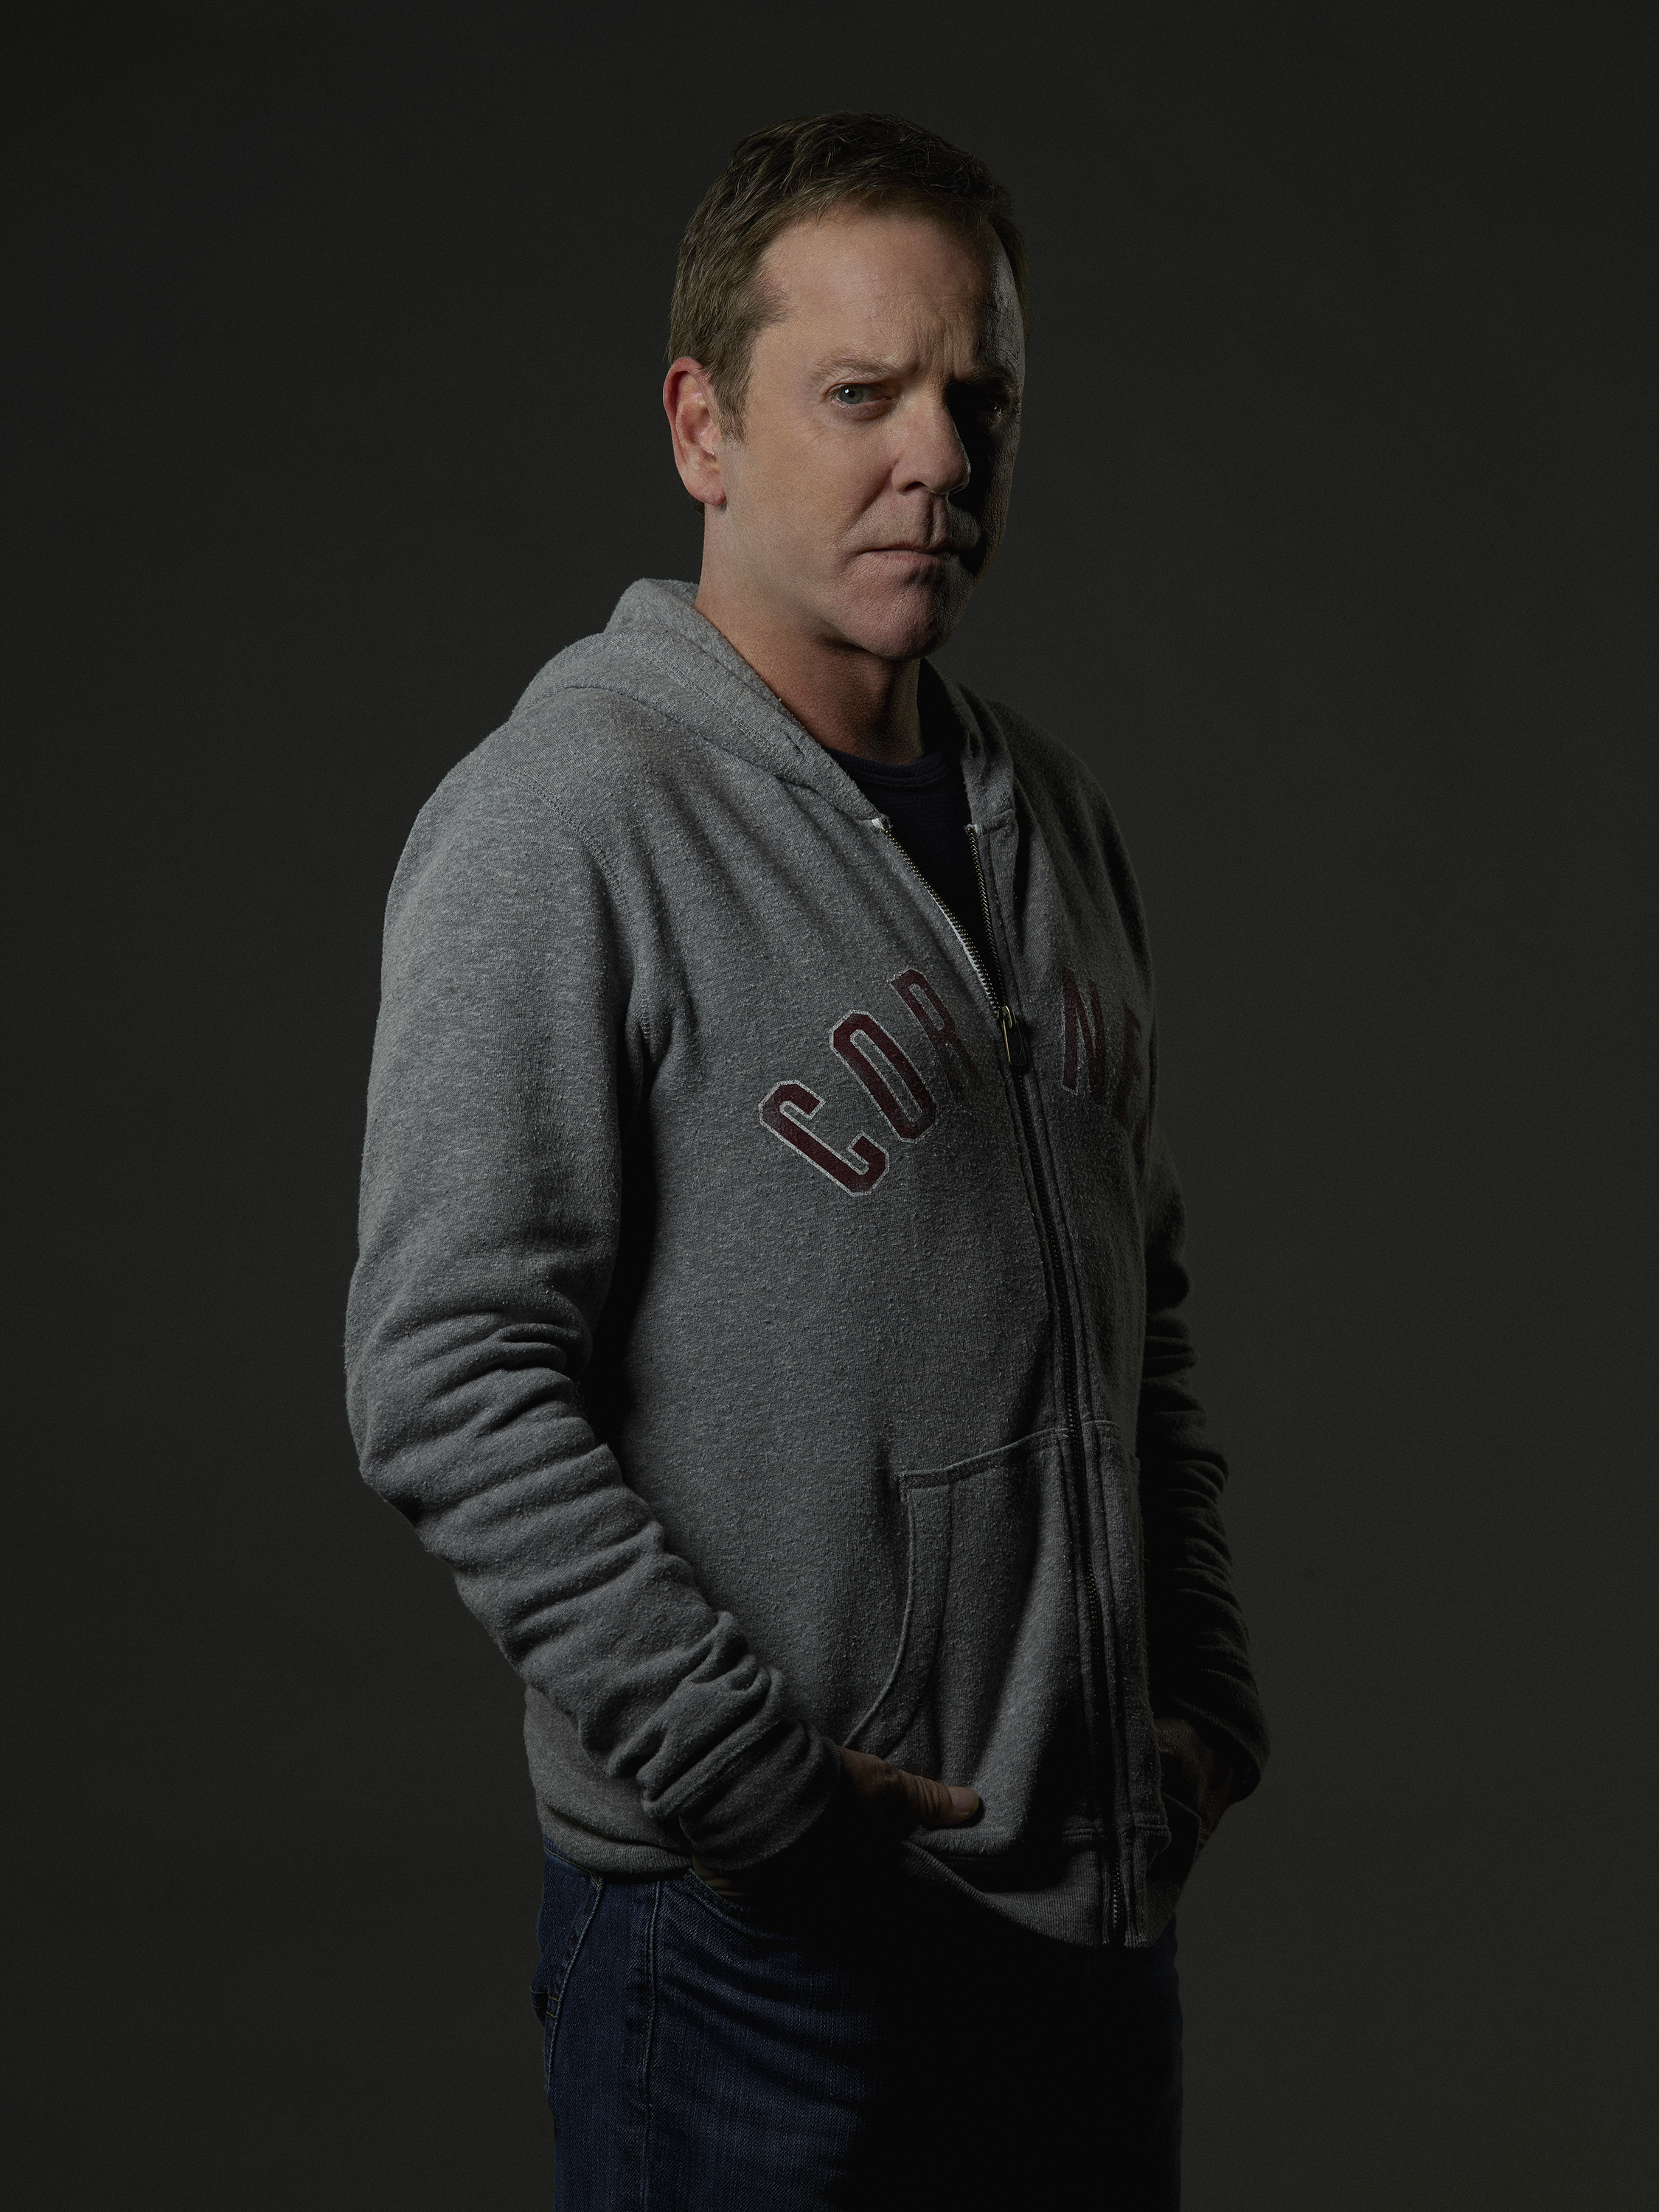 The blog kiefer sutherland home Sutherland home